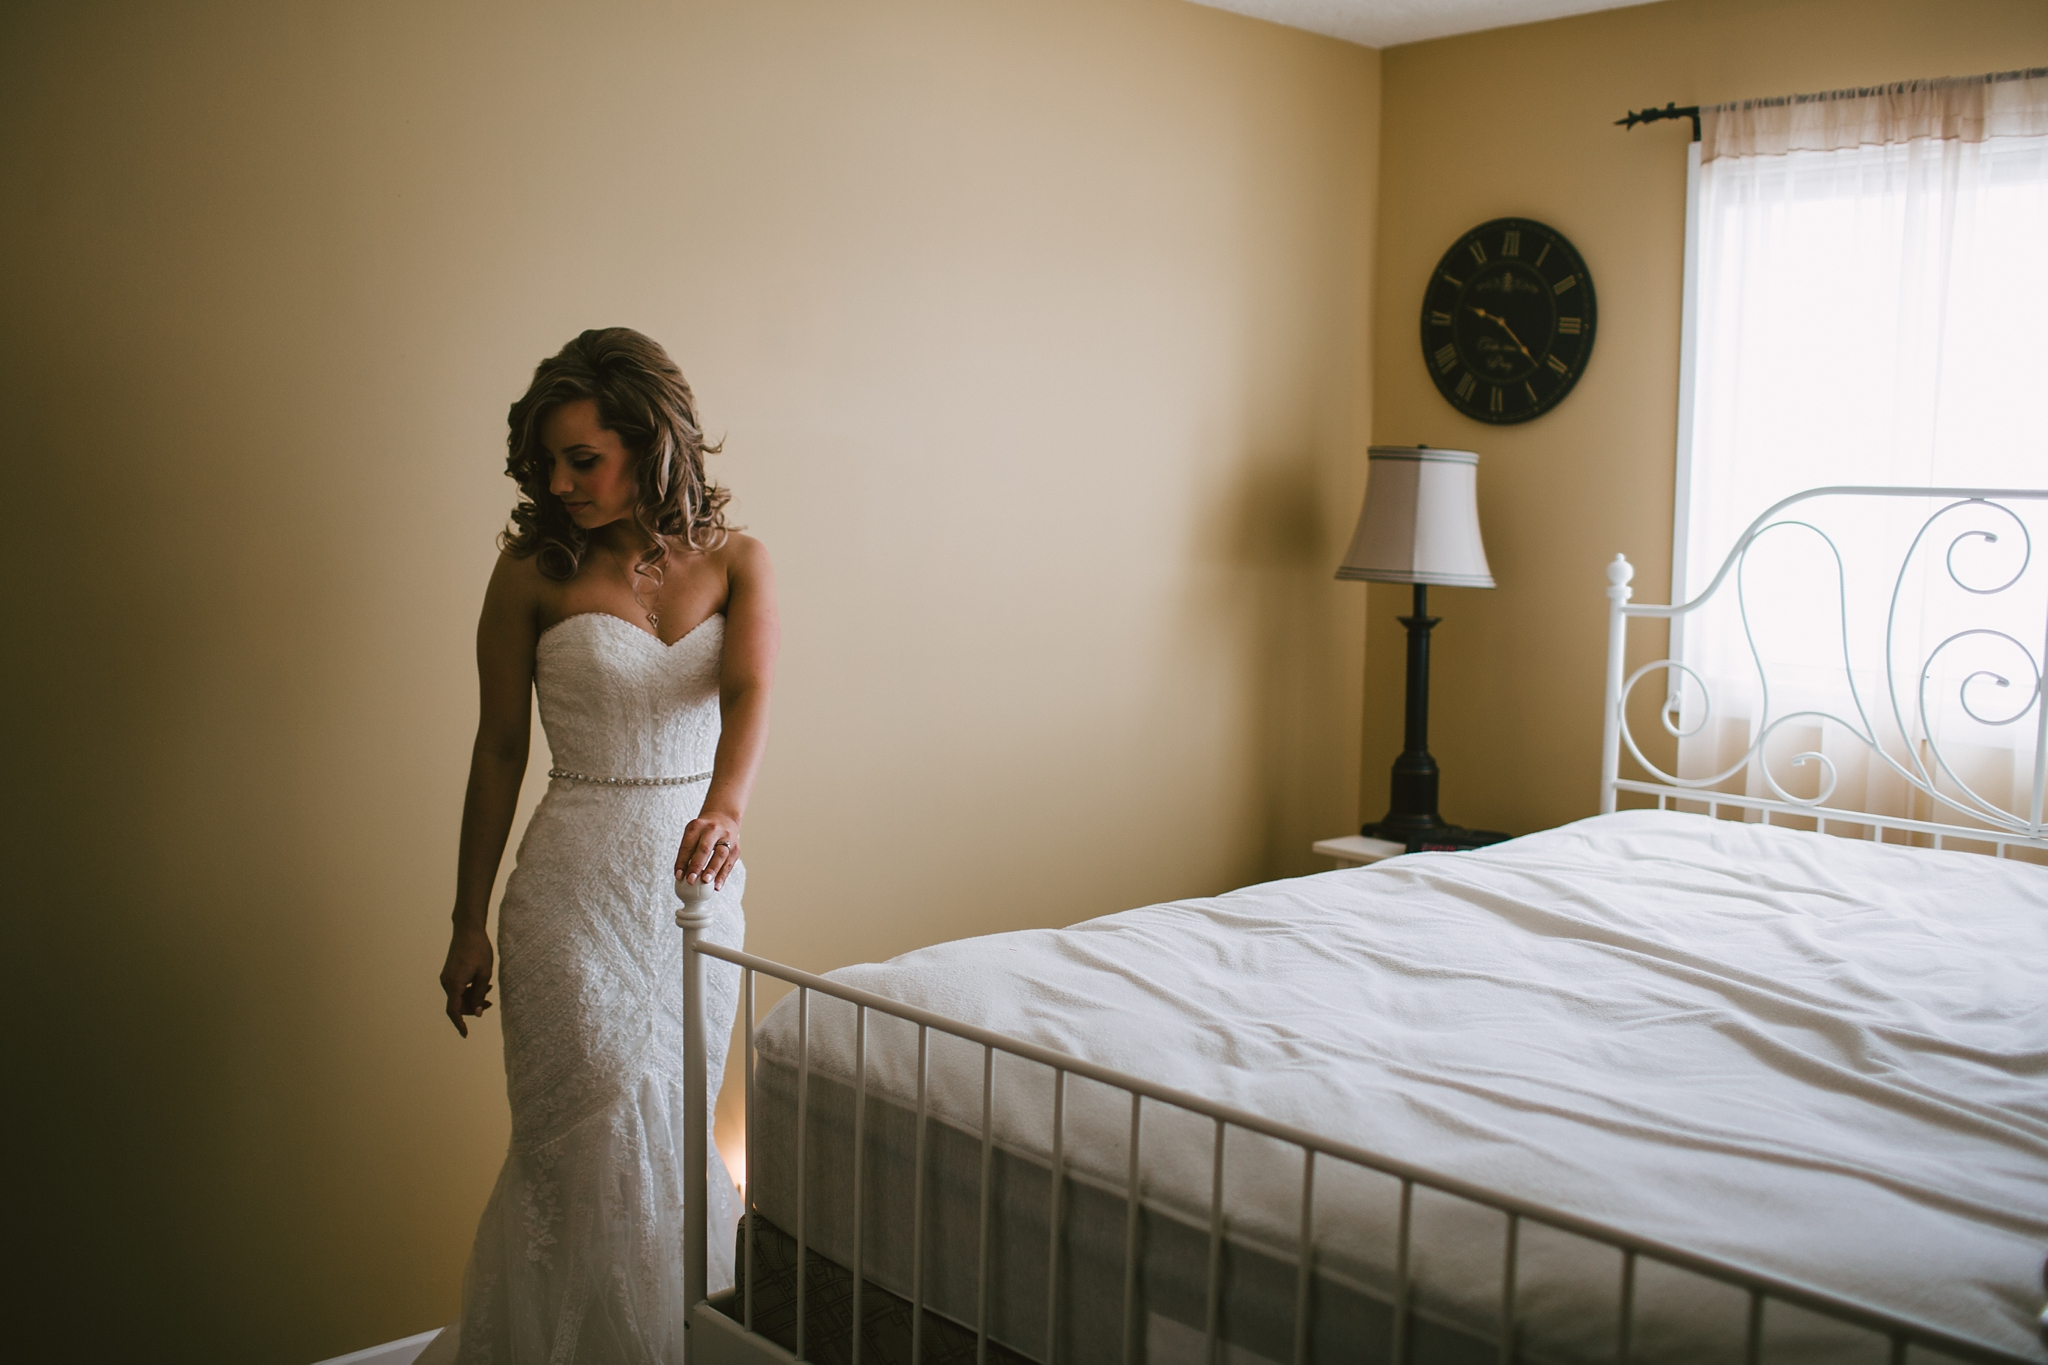 kaihla_tonai_intimate_wedding_elopement_photographer_0720